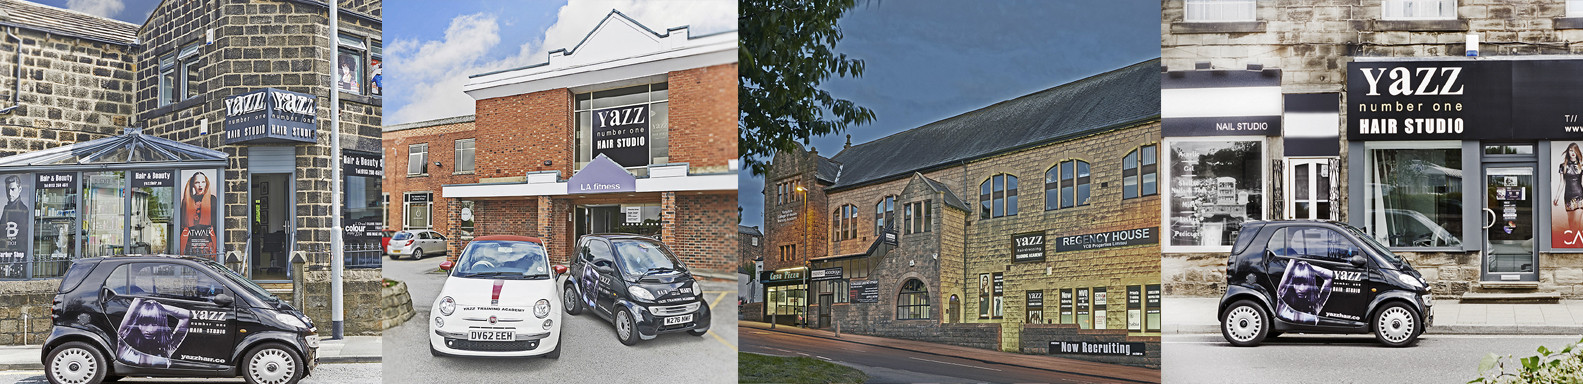 Yazz Hair Salons in Rawdon,Yeadon, and Guiseley, North Leeds, West Yorkshire.